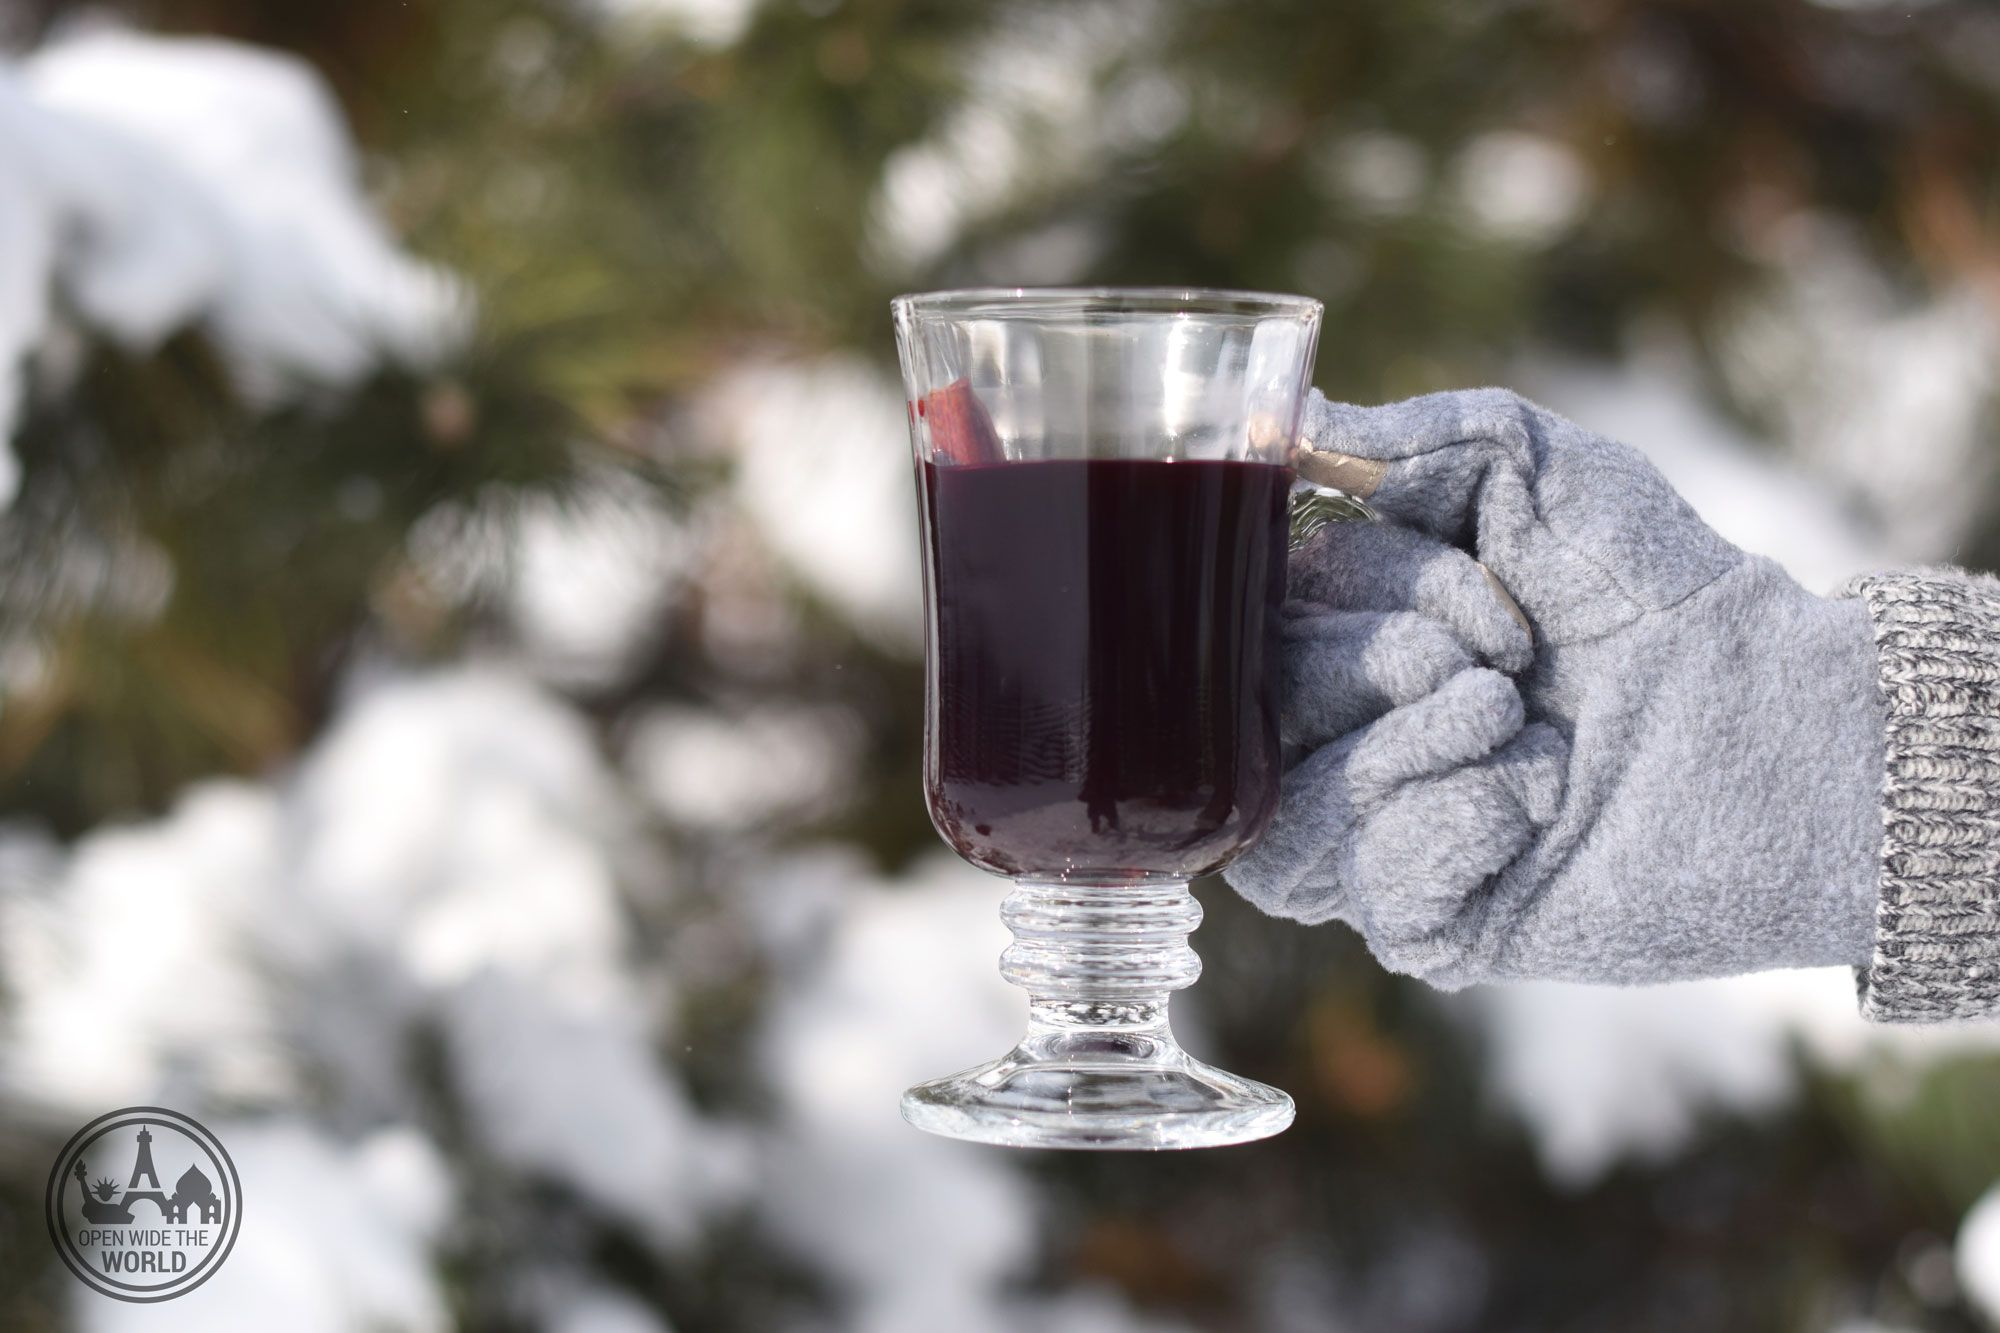 For the times when you can't travel at Christmas, why not bring the world festivities home? Recipes for our five favorite holiday cocktails from around the world! #cocktails #openwidetheworld